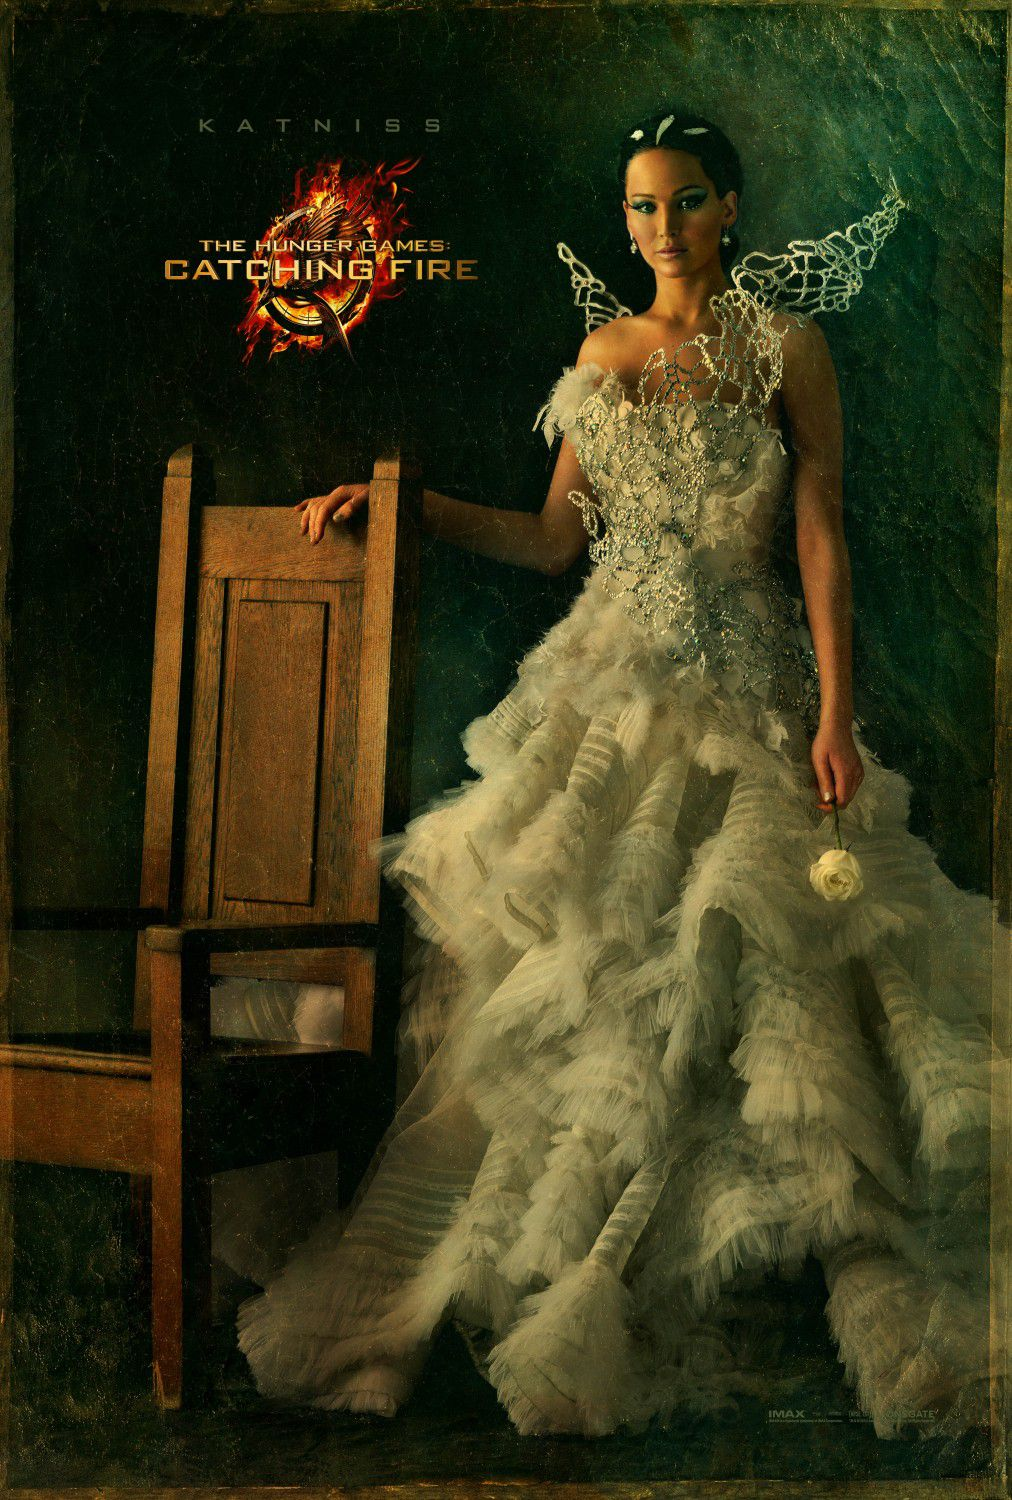 Jennifer Lawrence is Katniss Everdeen - white wedding dress